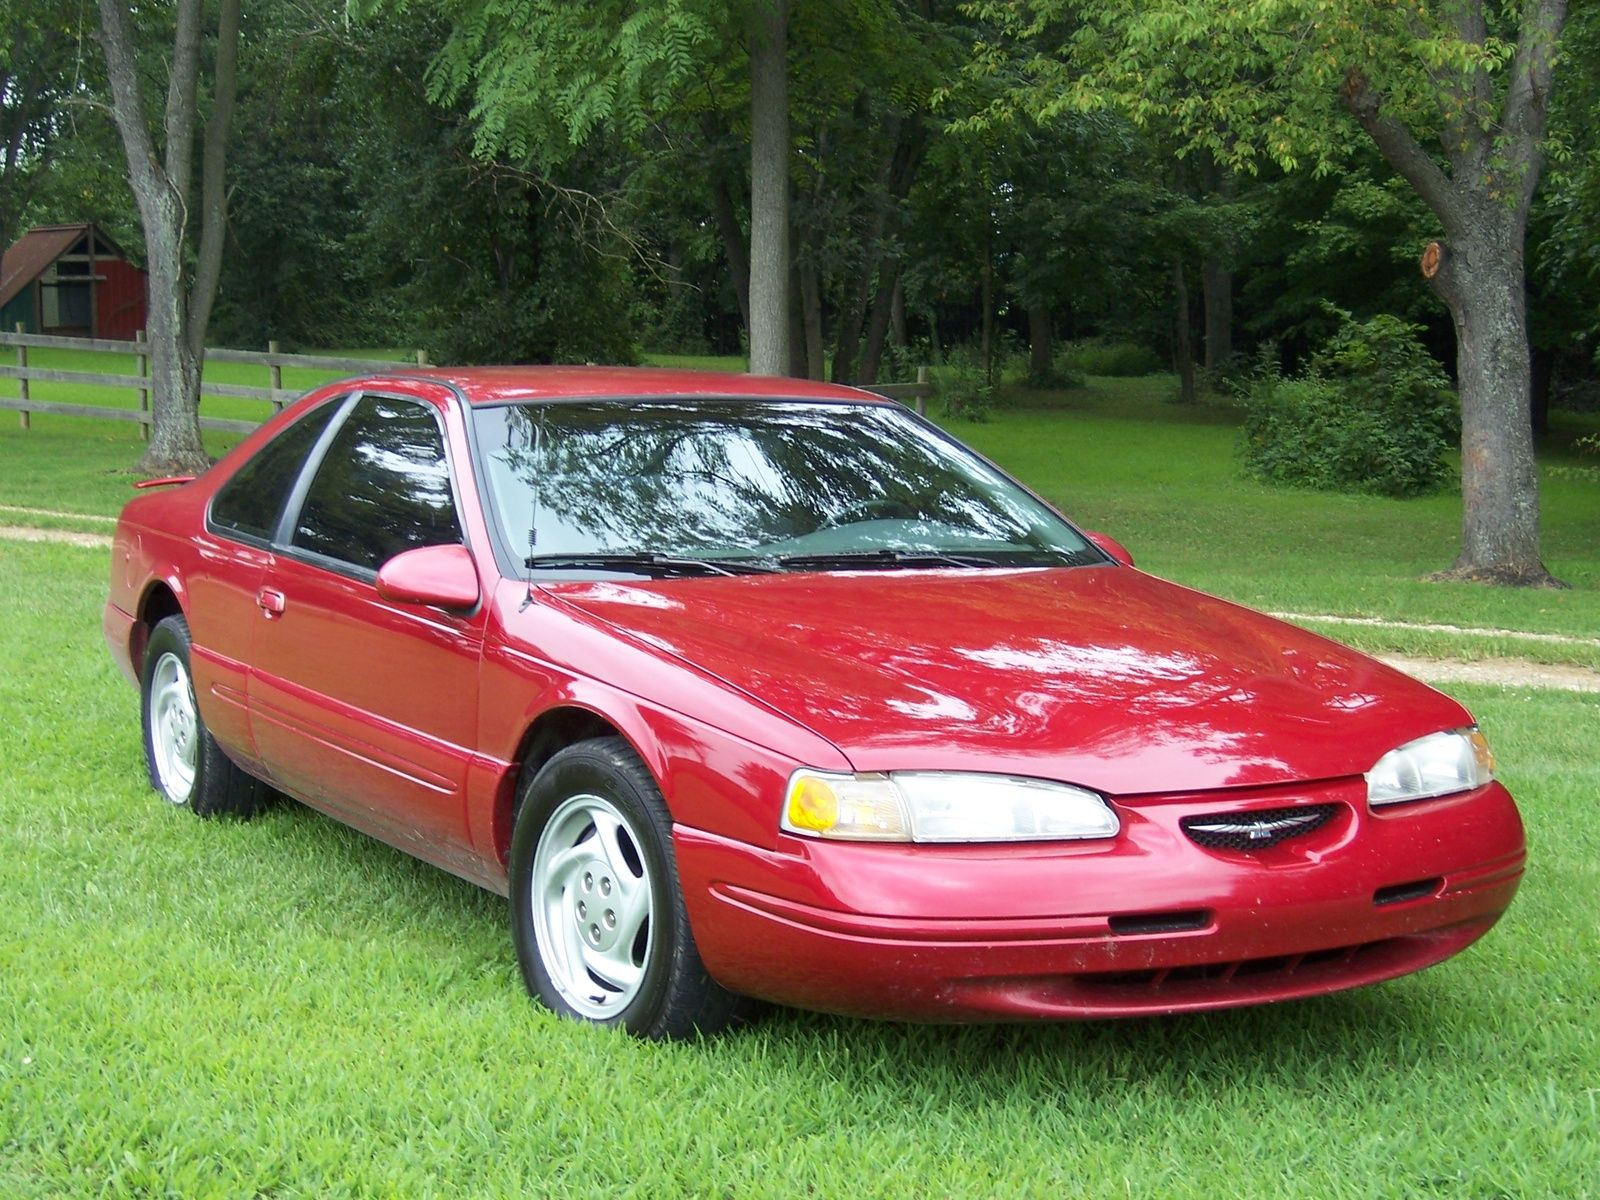 1996 Ford Thunderbird Lx 4 6 Thunderbird Ford Thunderbird Ford